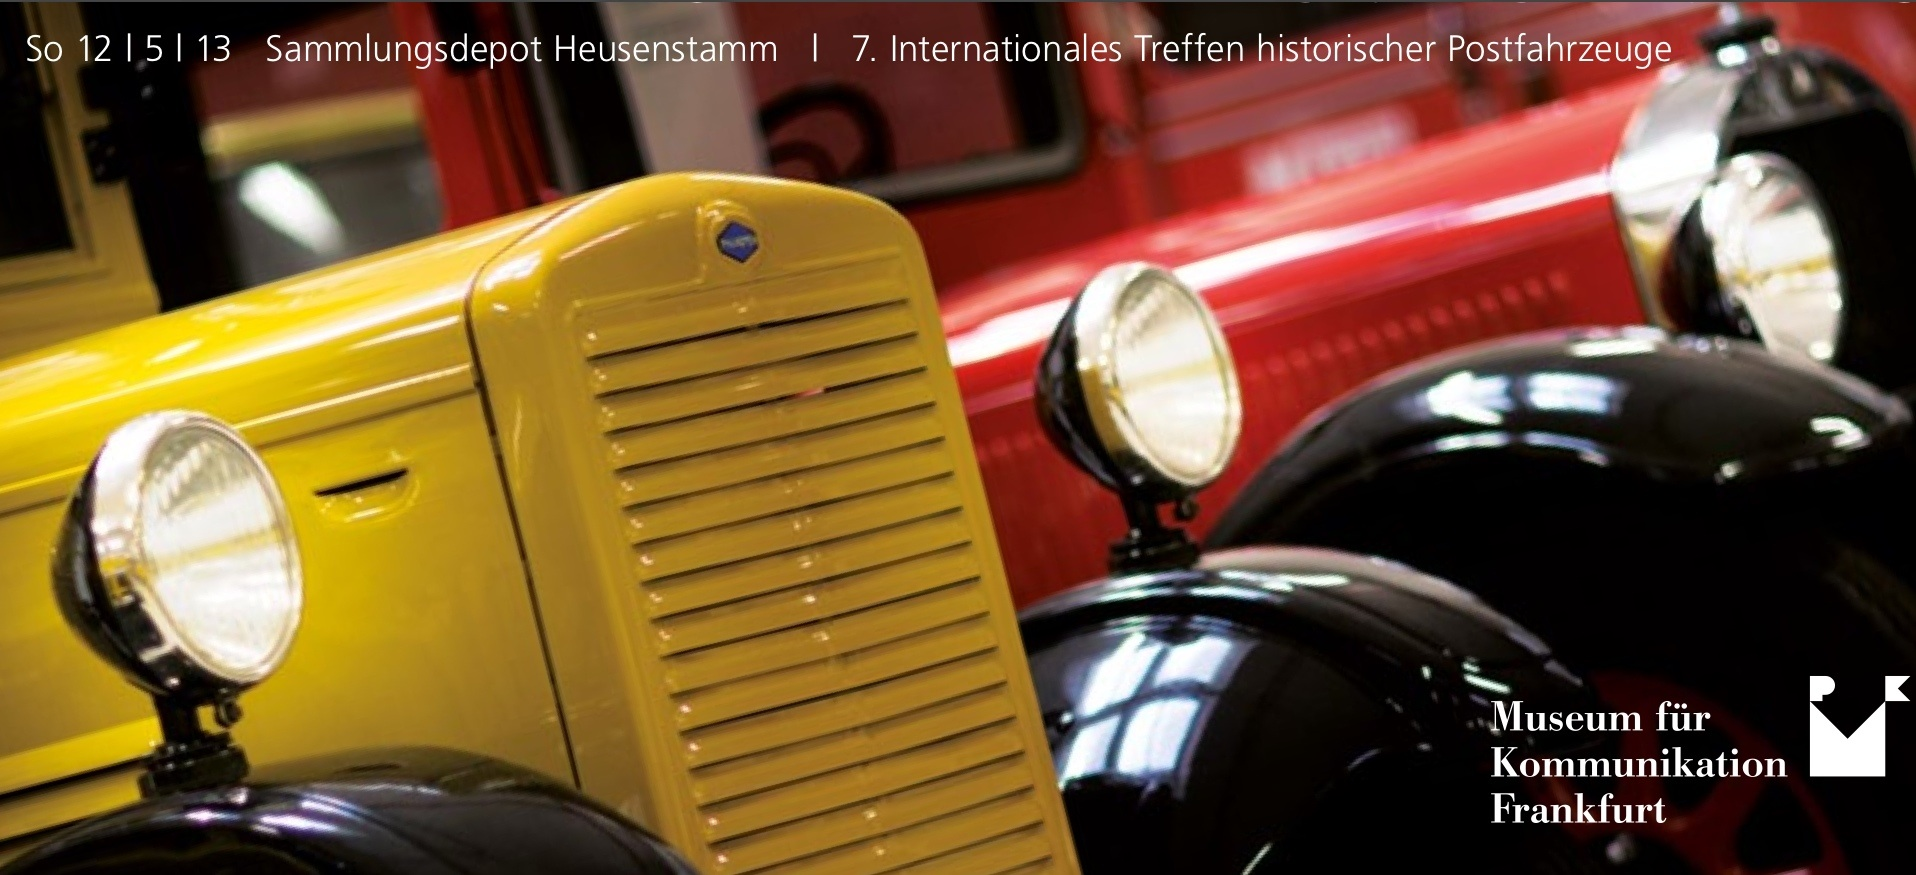 Internationaler Museumstag 2.0 in Heusenstamm